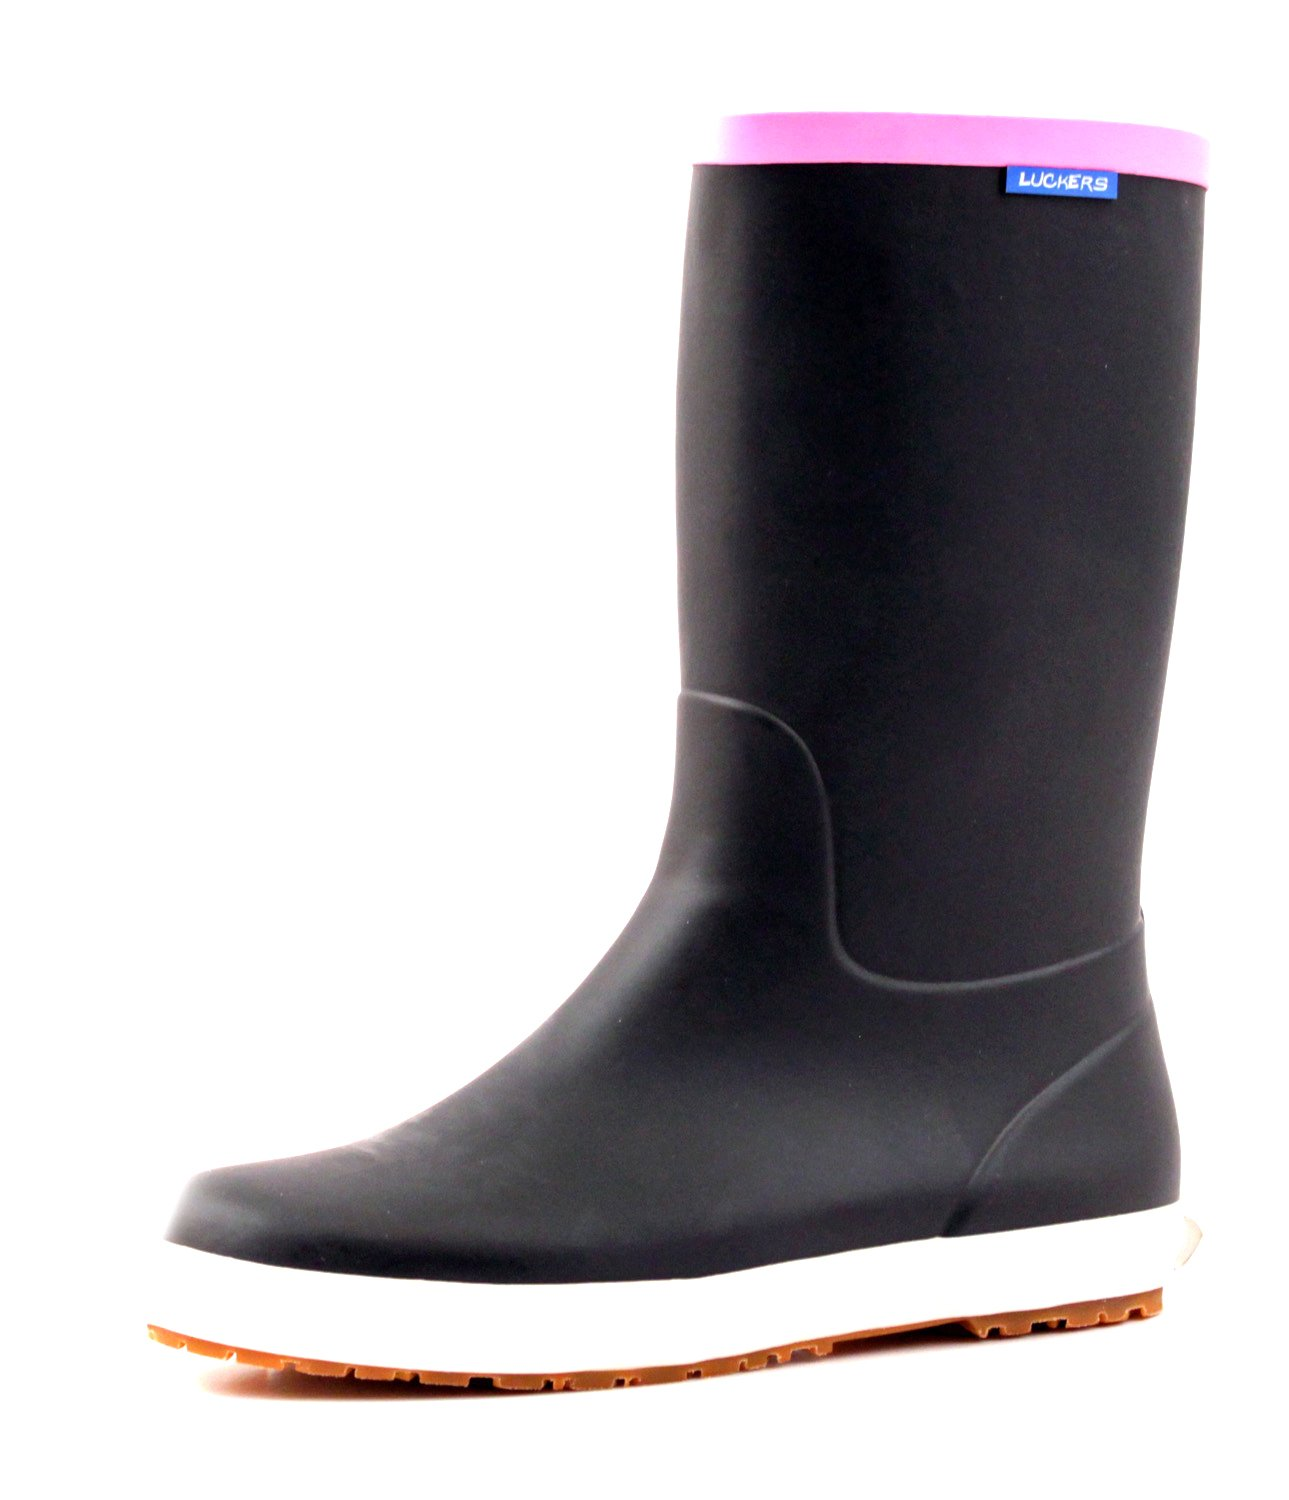 Luckers Women's Trendy Foldable Wellies Rain Boots (9 B(M) US, Black)